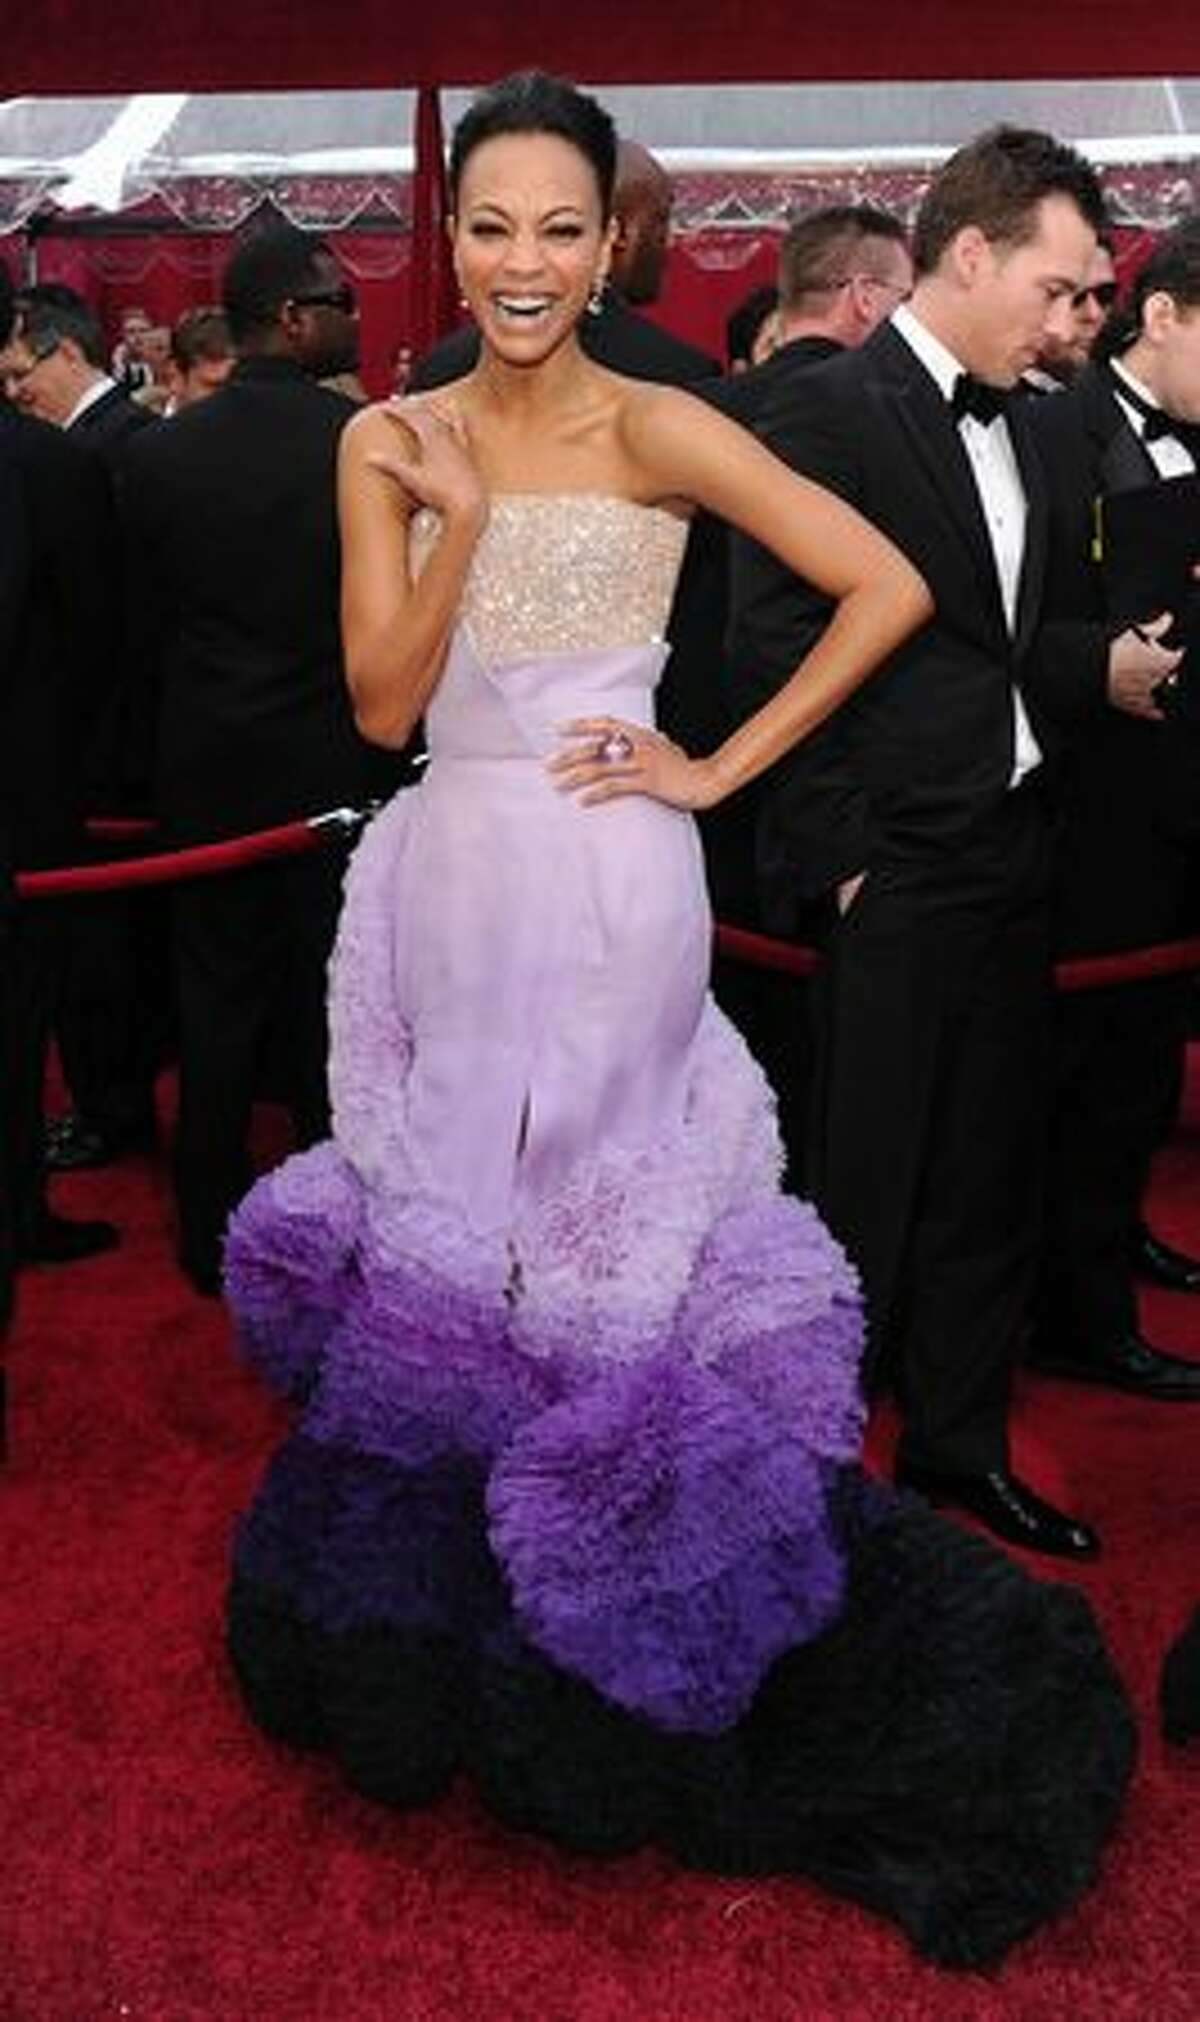 Right from the top let's just get this out in the open: What would possess so many beautiful women to put their hair up and hide it? That being said, let's get out the shears and deconstruct a few garments. Zoe Saldana's wearing a Givenchy couture gown which looks worse the longer you look at it.